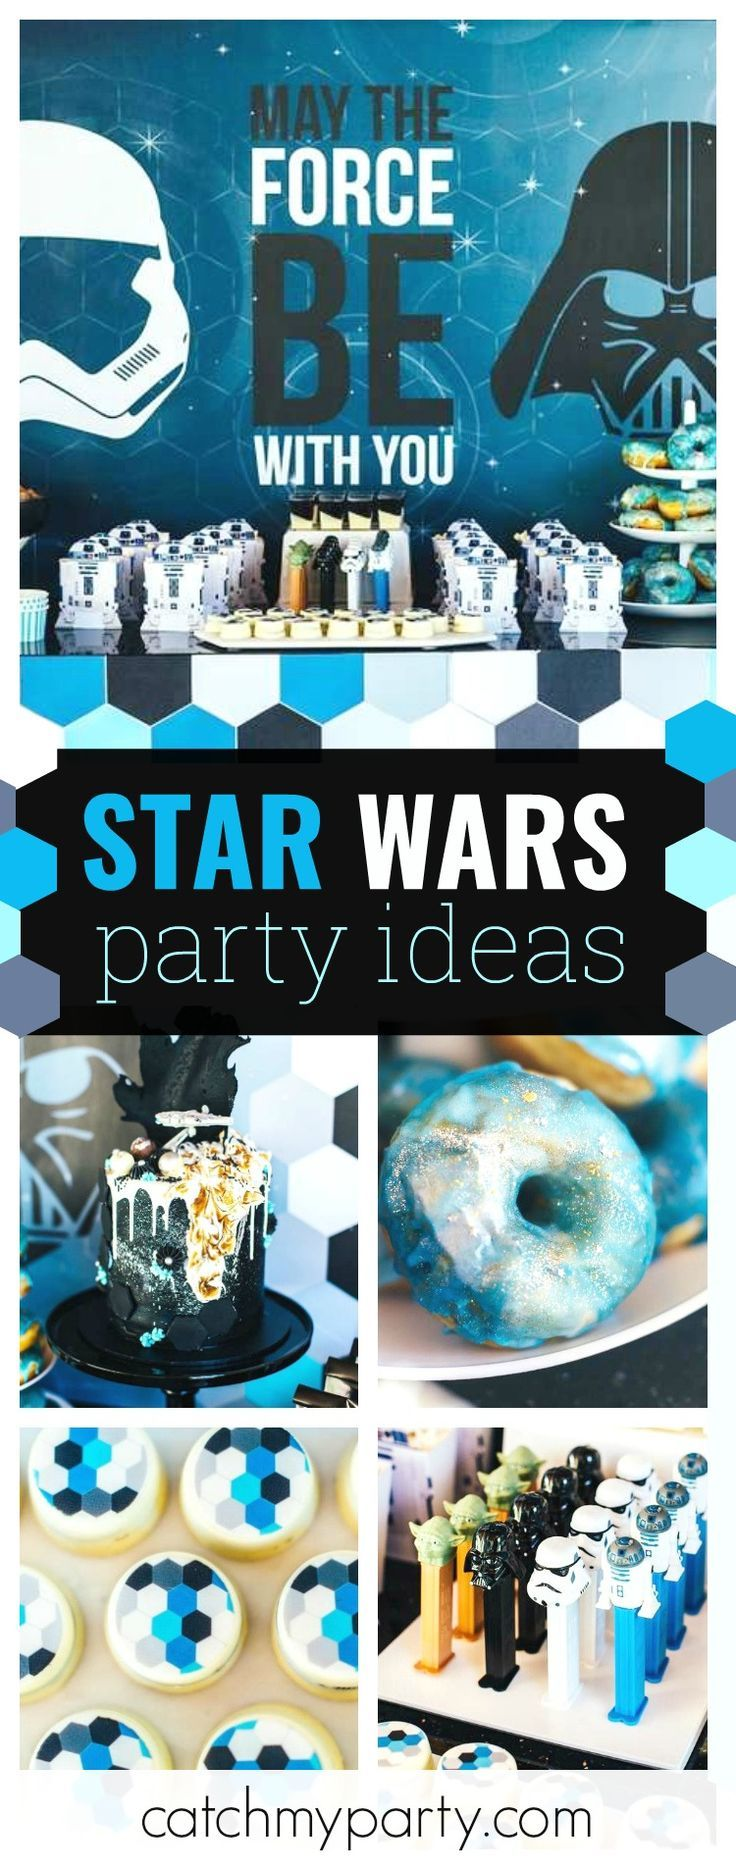 Travel to a Galaxy Far Away with this incredible Star Wars